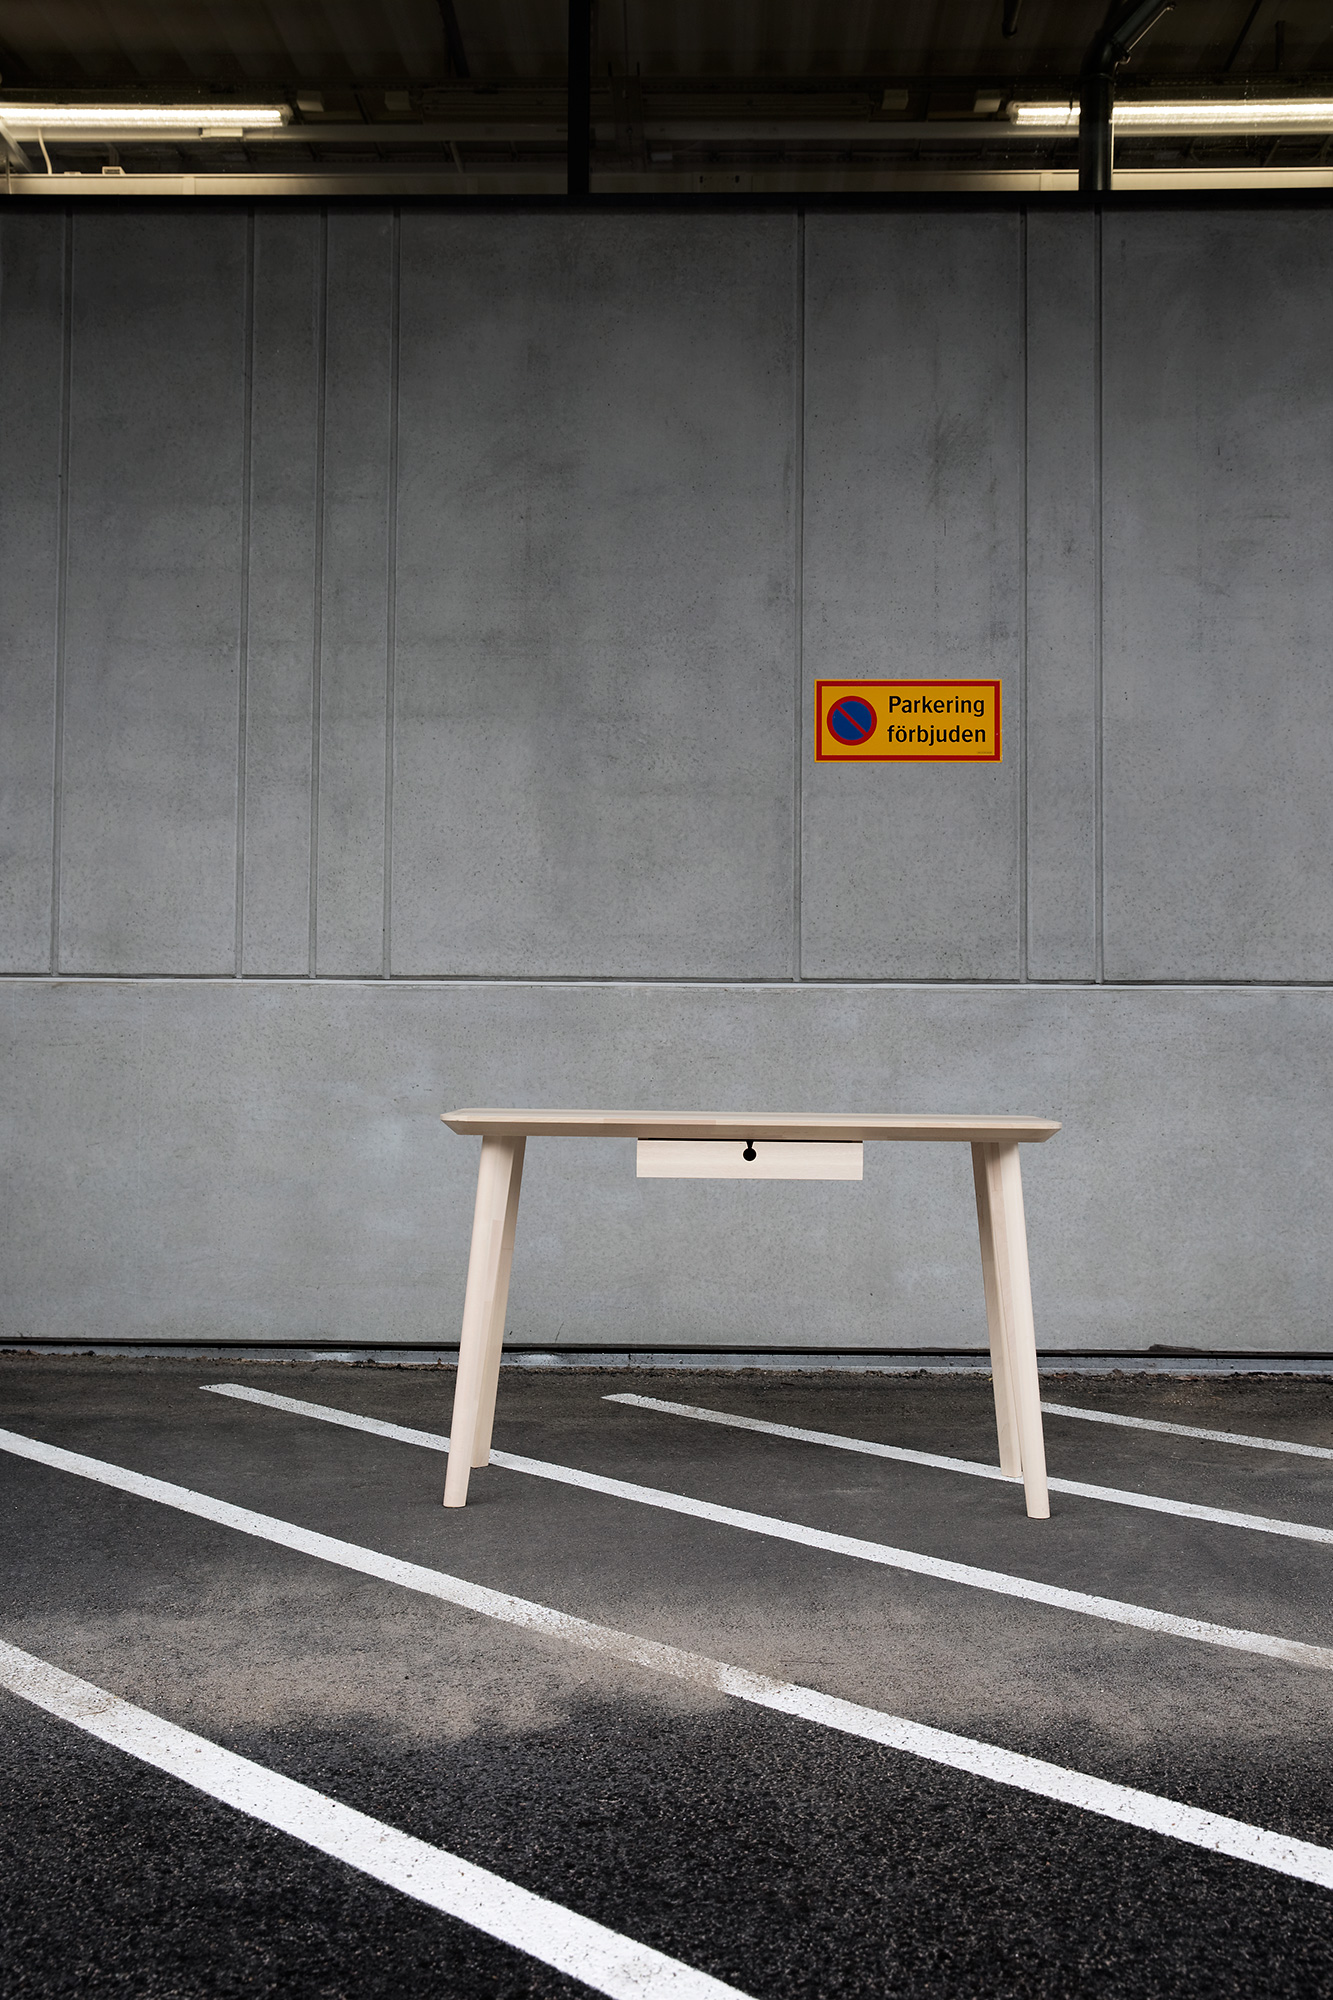 A light wooden table with a single drawer, standing on asphalt in front of a concrete facade with a parking-forbidden sign.